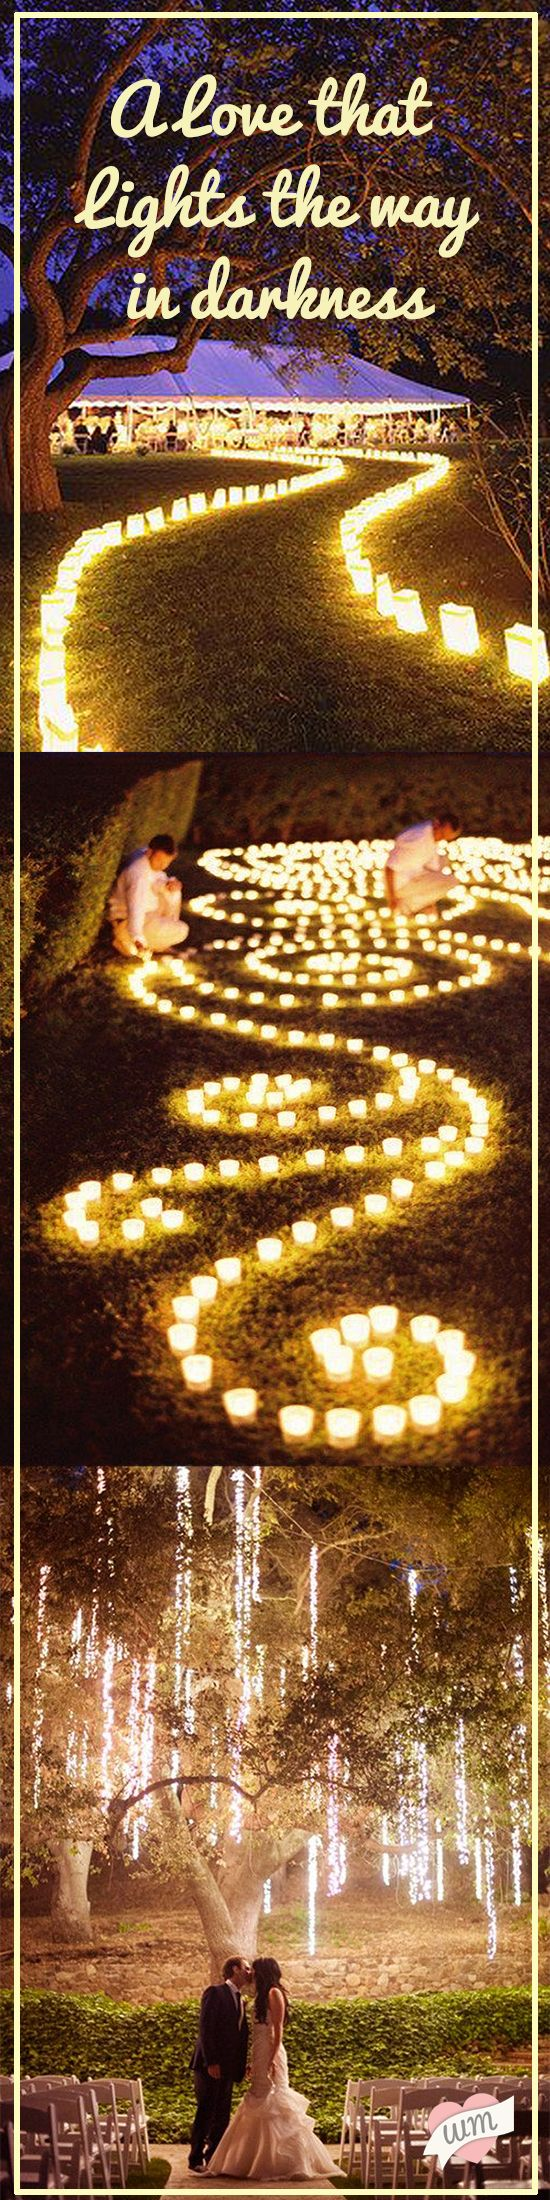 diy outdoor wedding lighting ideas%0A Outdoor lighting can be so romantic  Such a great way to add to the mood    Diy  Wedding